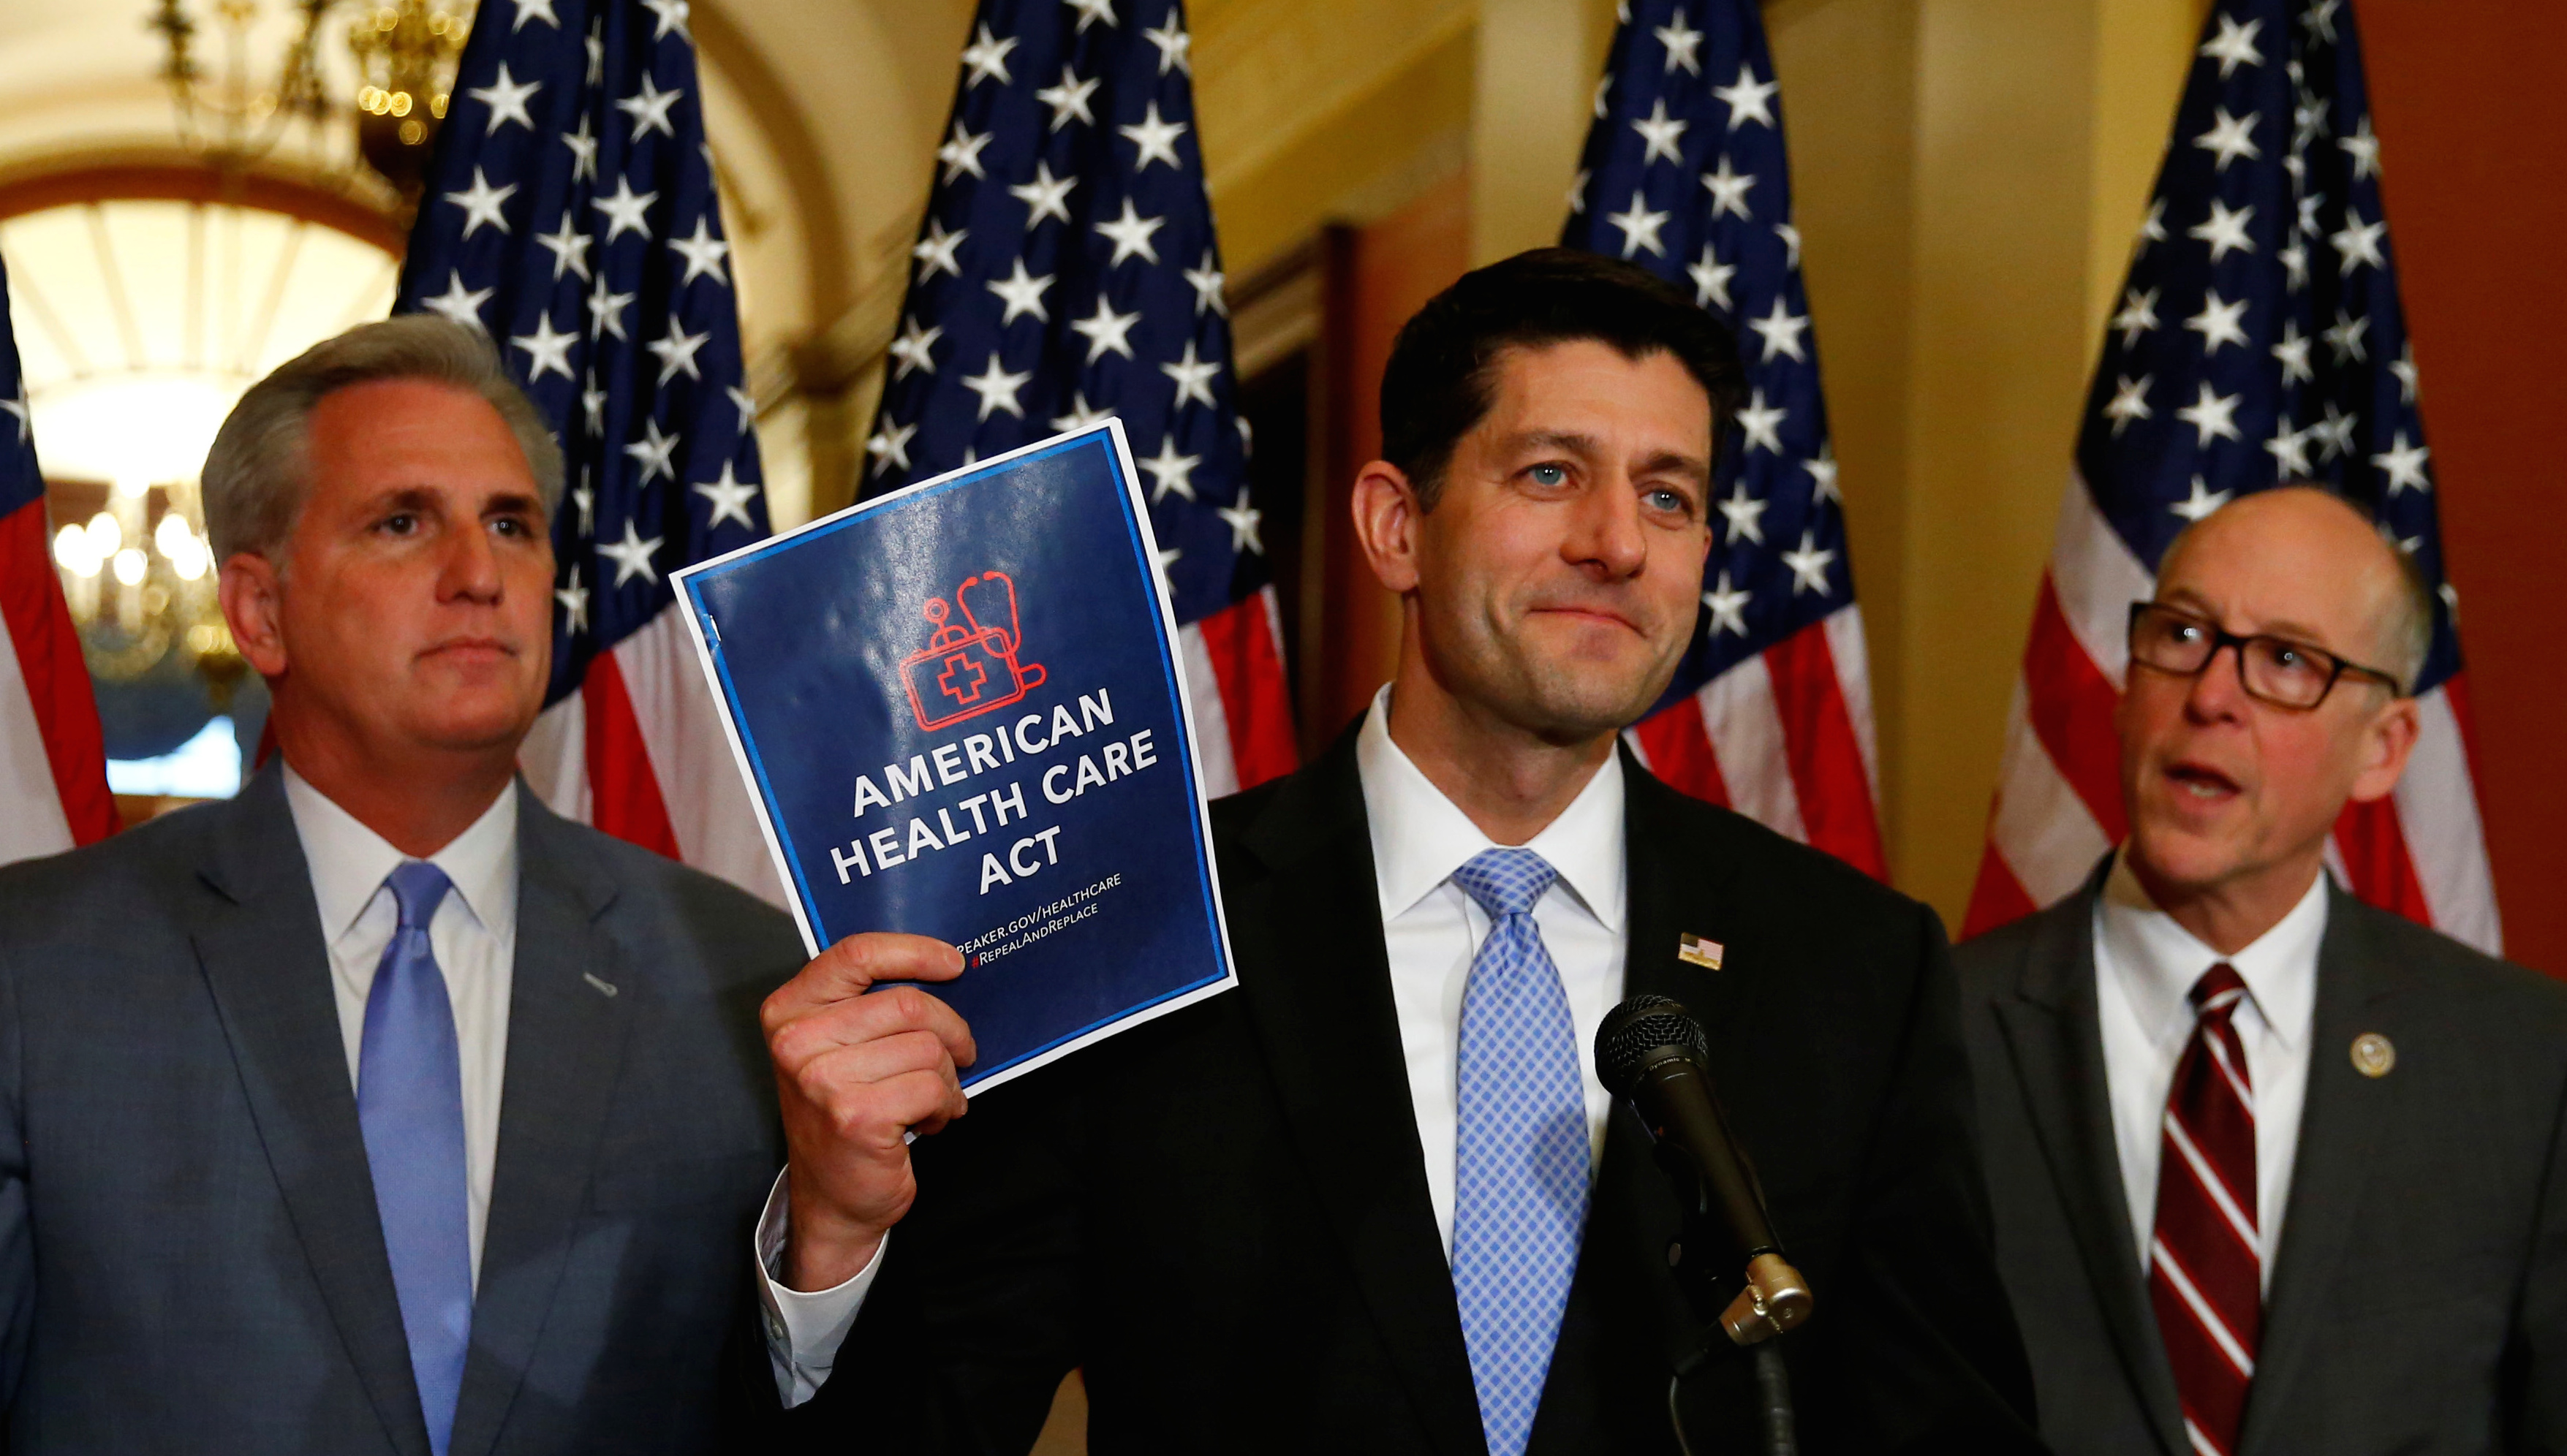 US House Speaker Paul Ryan hold a news conference on the American Health Care Act.